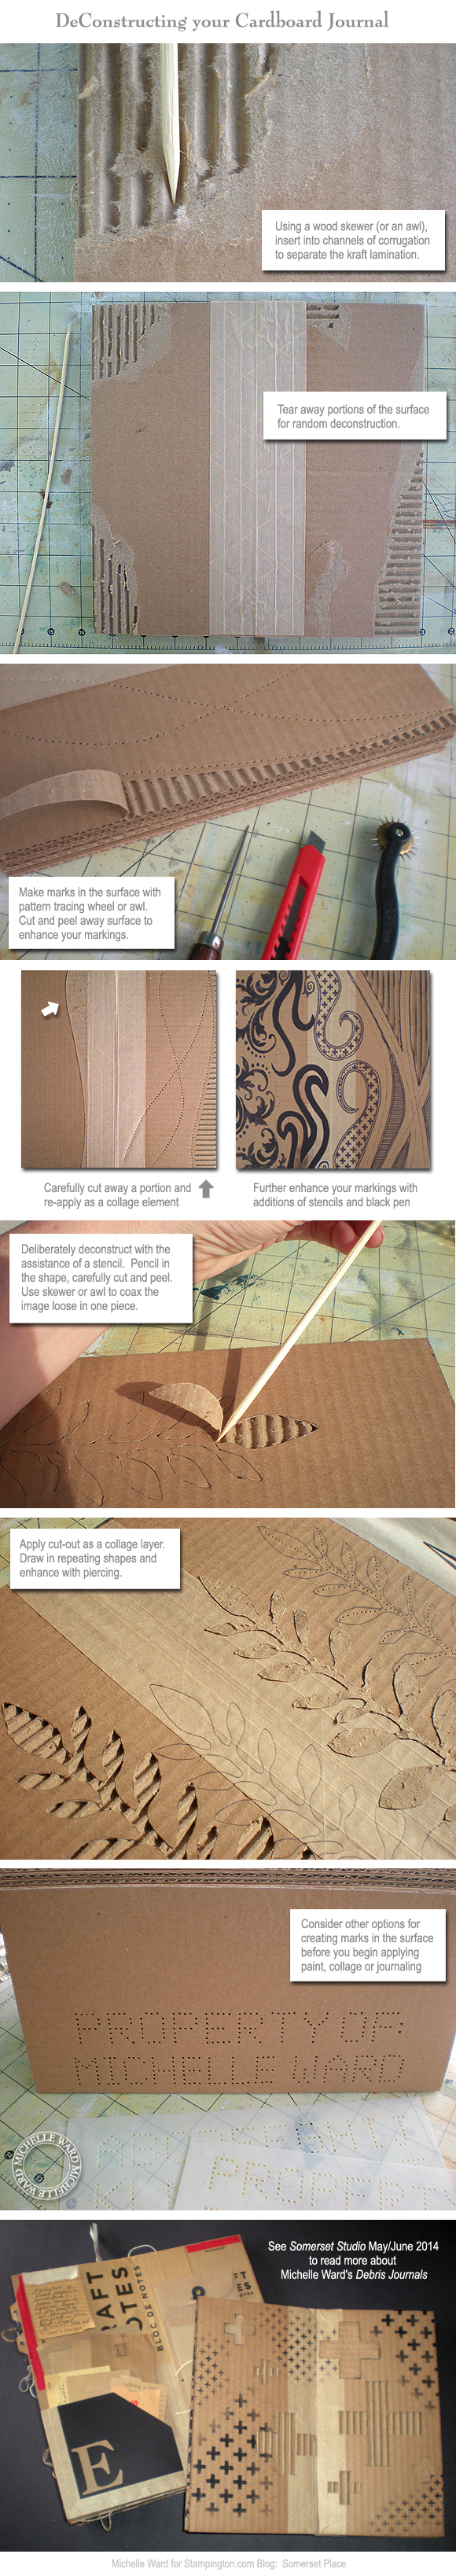 MKW-Cardboard-Journal-Tutorial-2